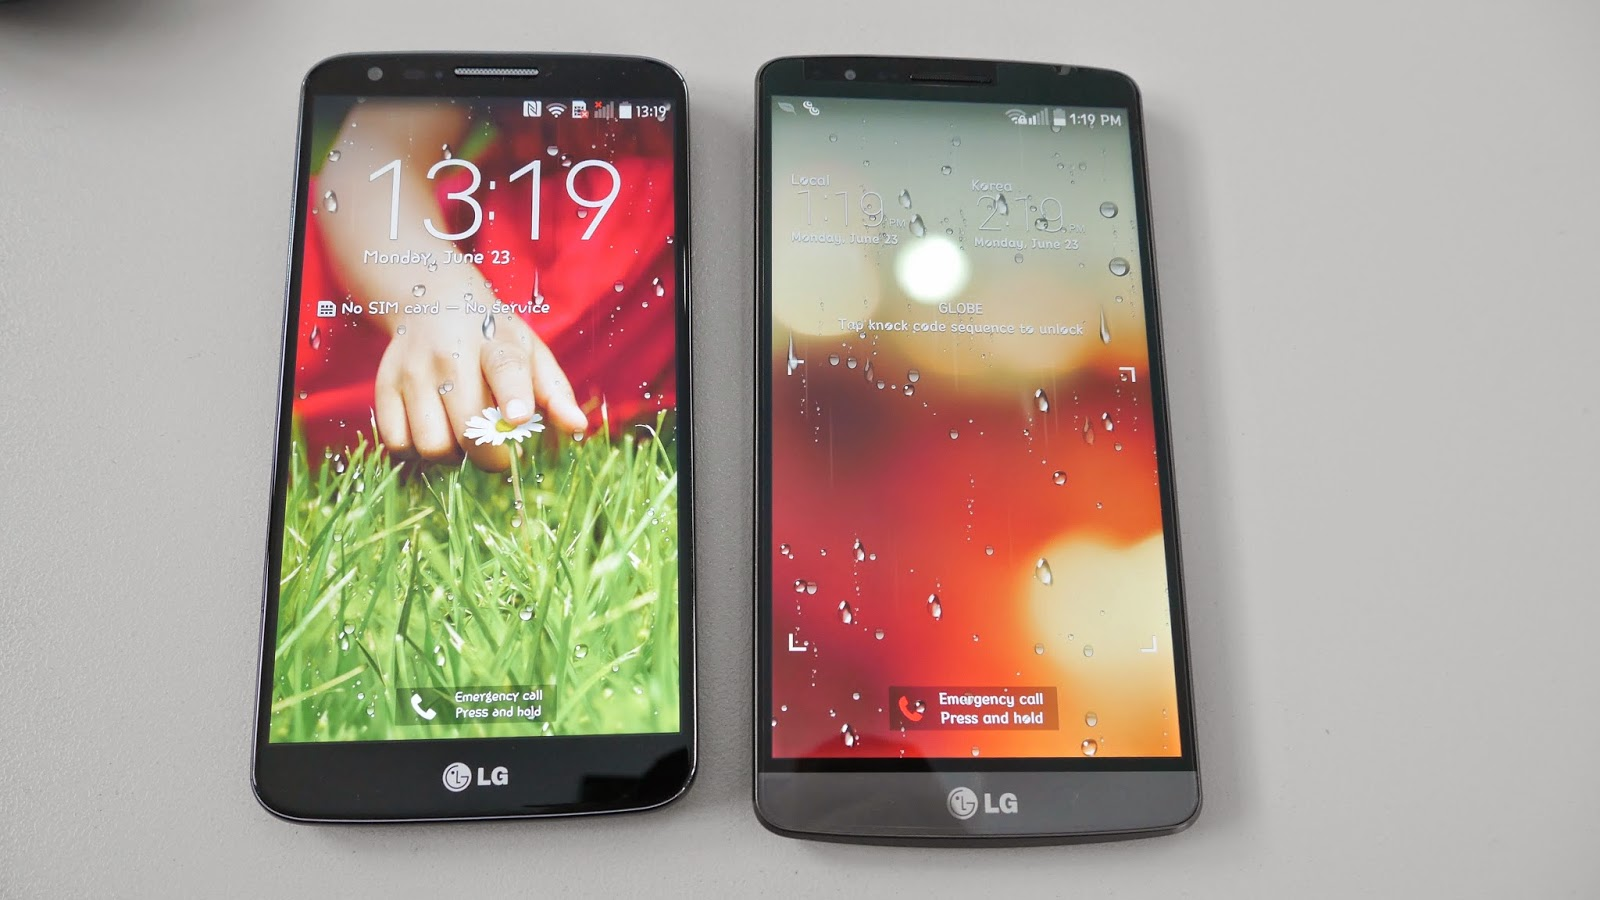 side by side: LG G3 vs G2